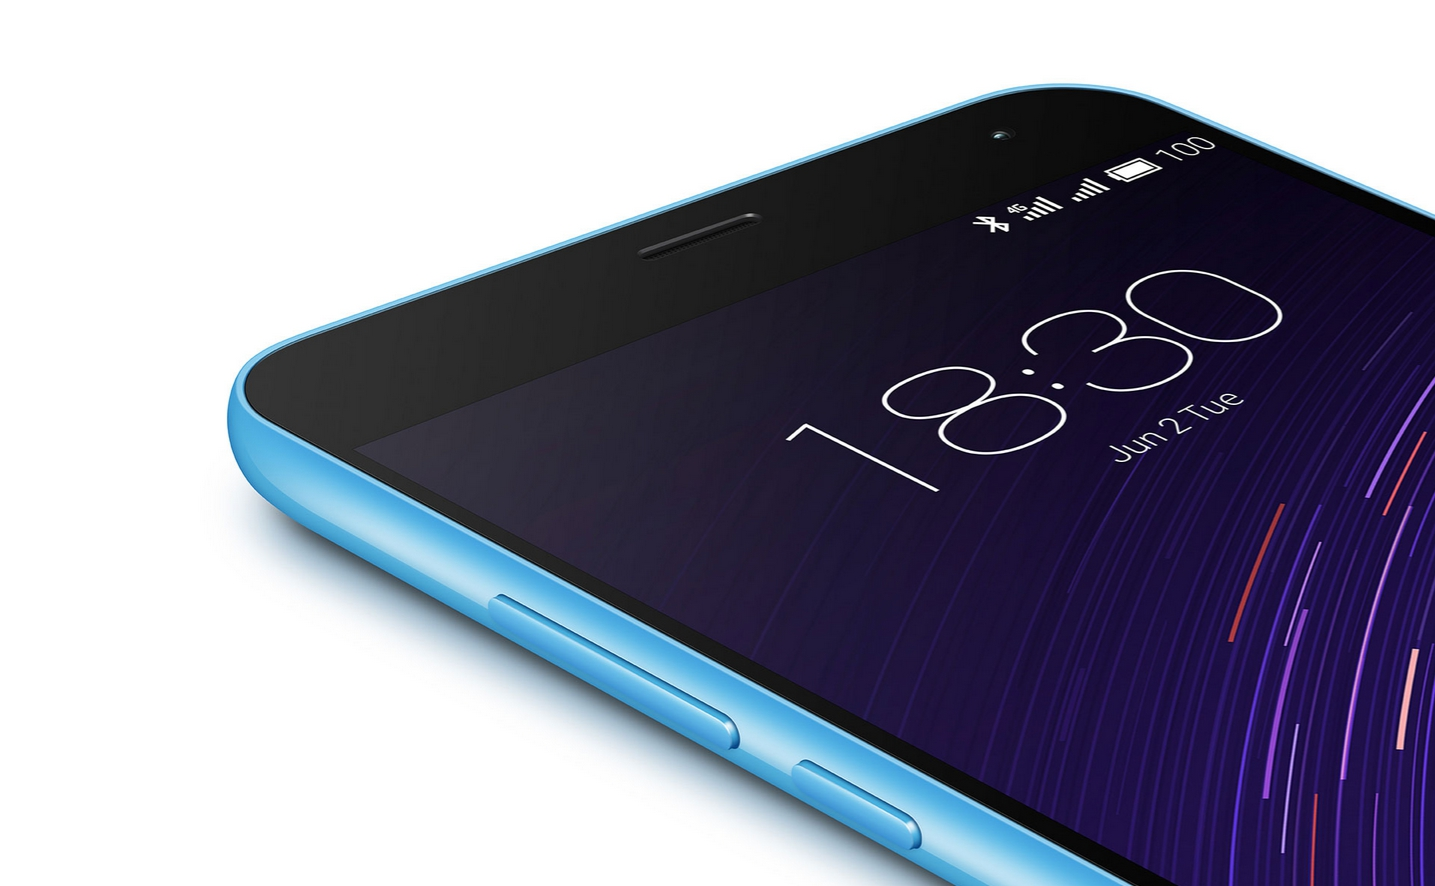 Meizu - M2 Note - Blue Charm Note 2 - photo5